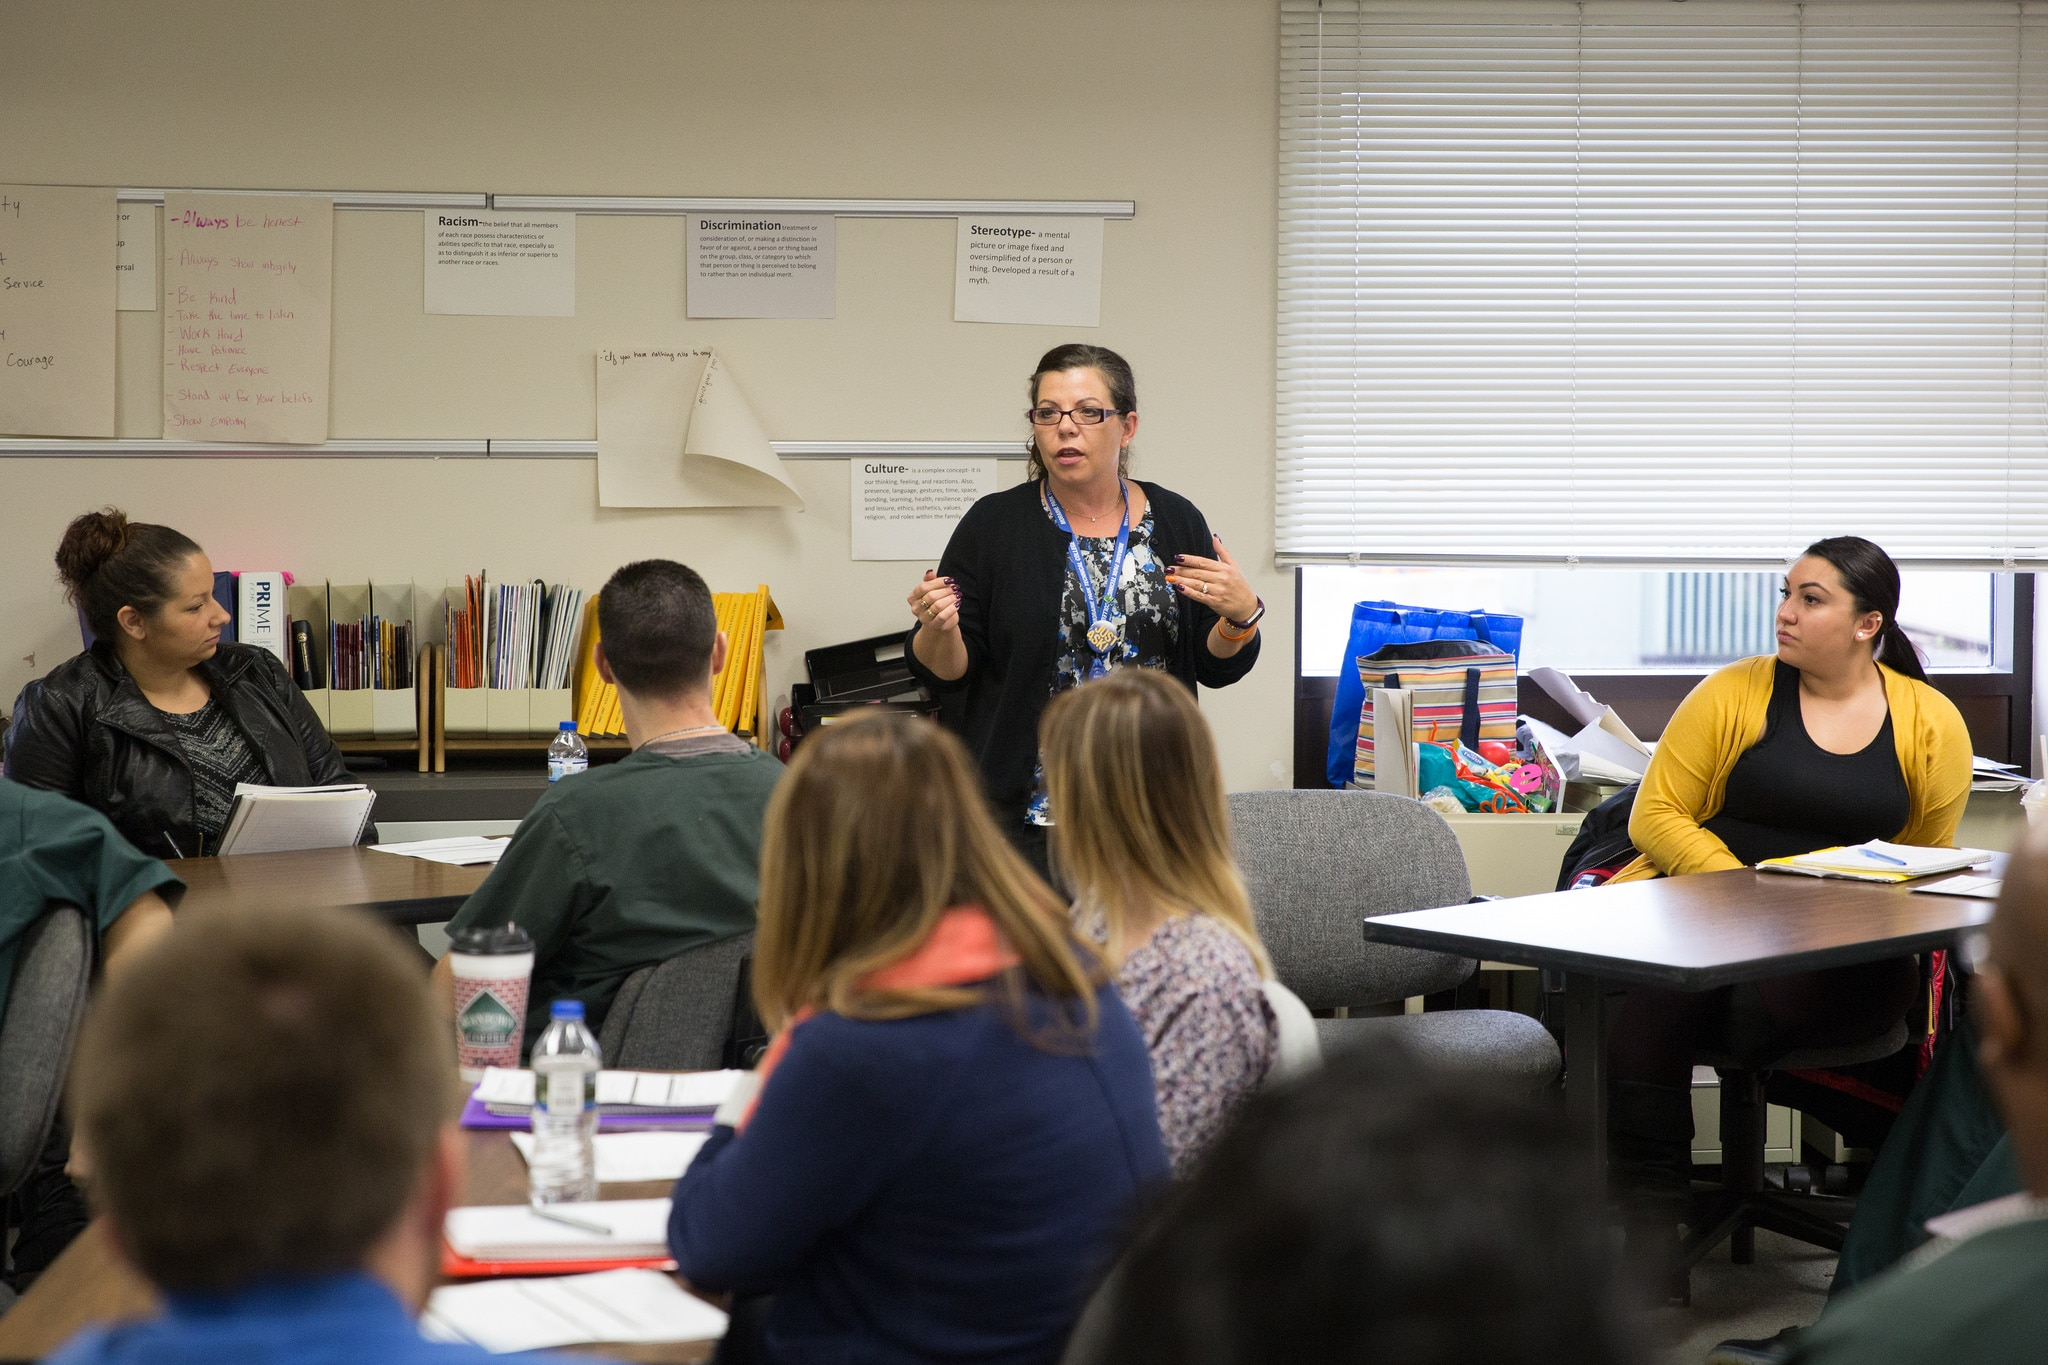 Criminal Justice Instructor, Joan Barfield teaching in class to students